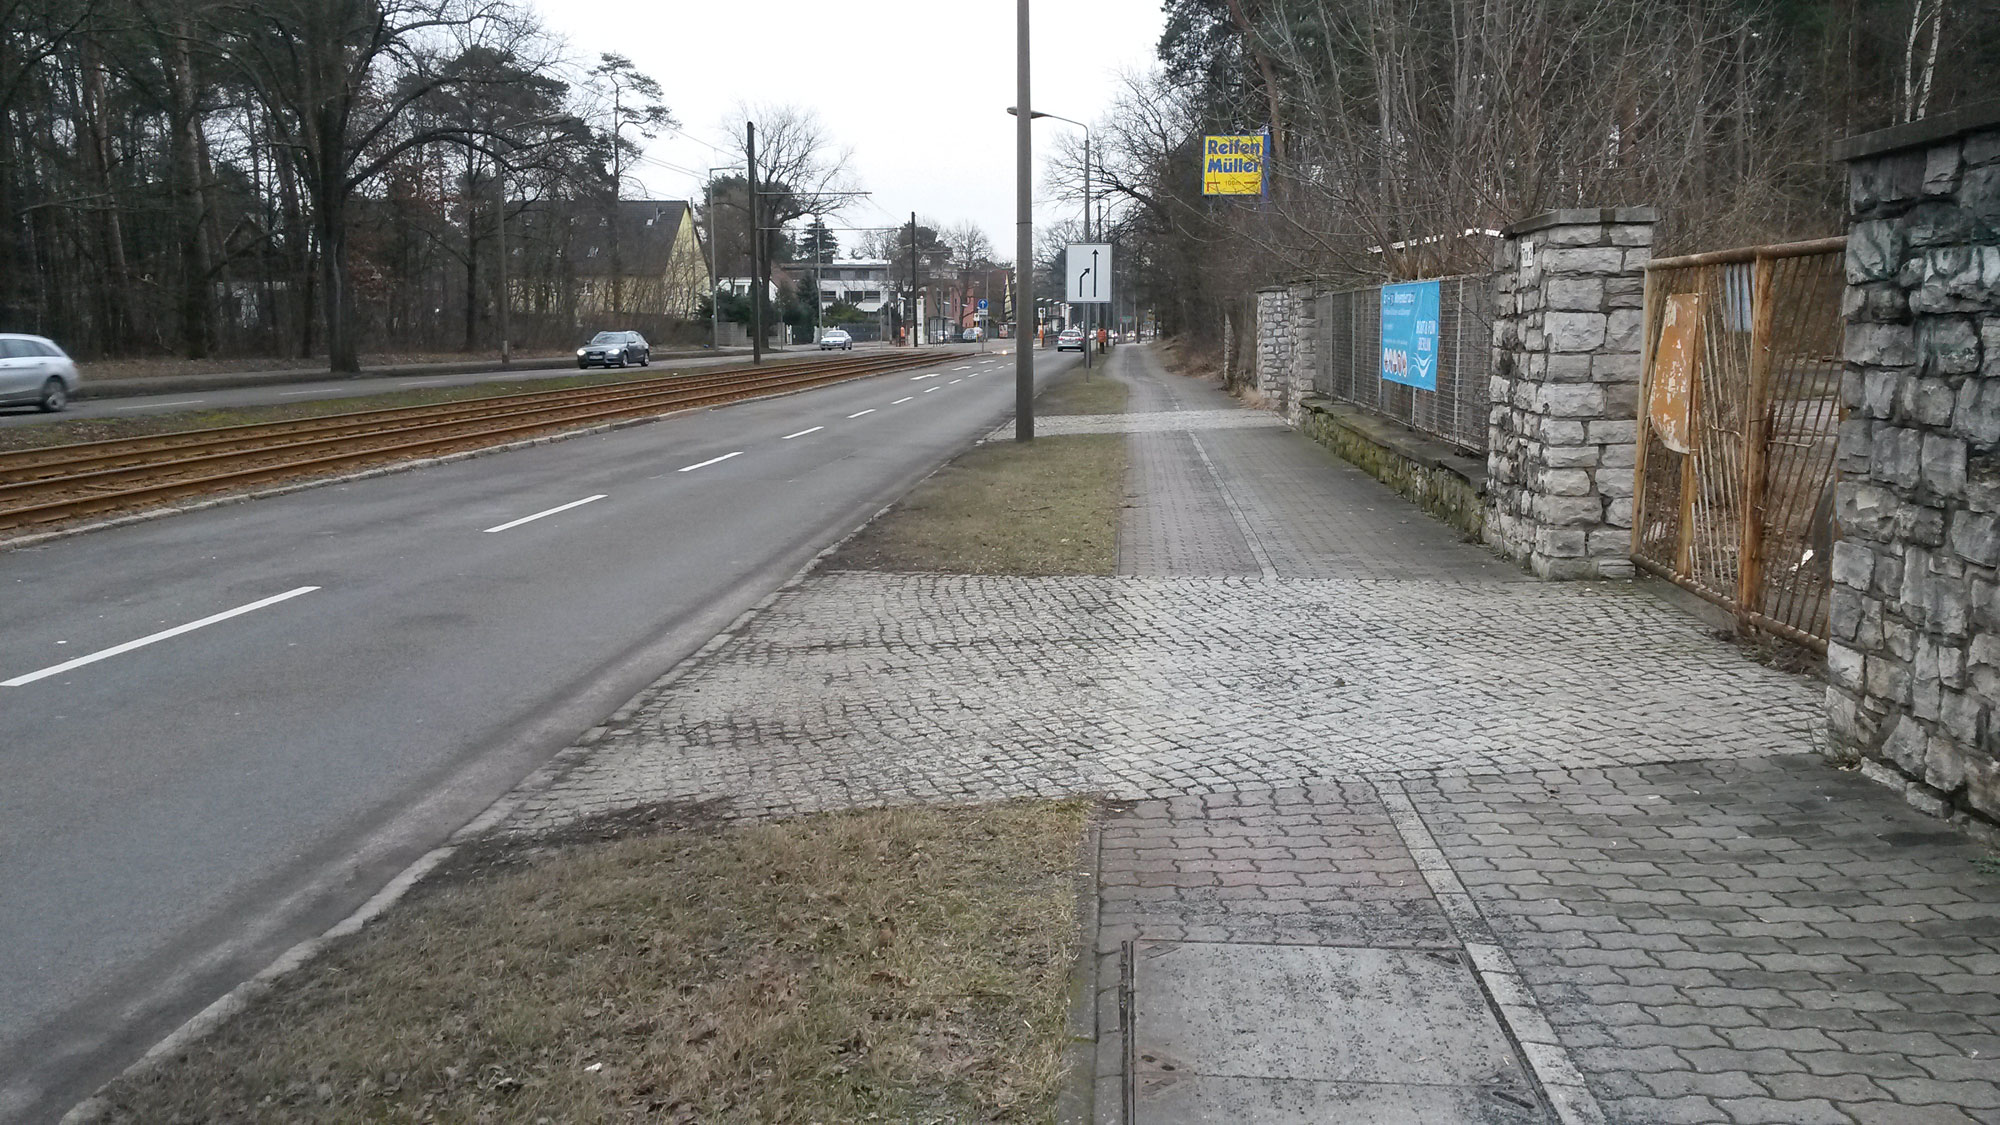 11 February 2015: Street vs bike path on Adlergestell east of Grünau, just before Schmöckwitz.